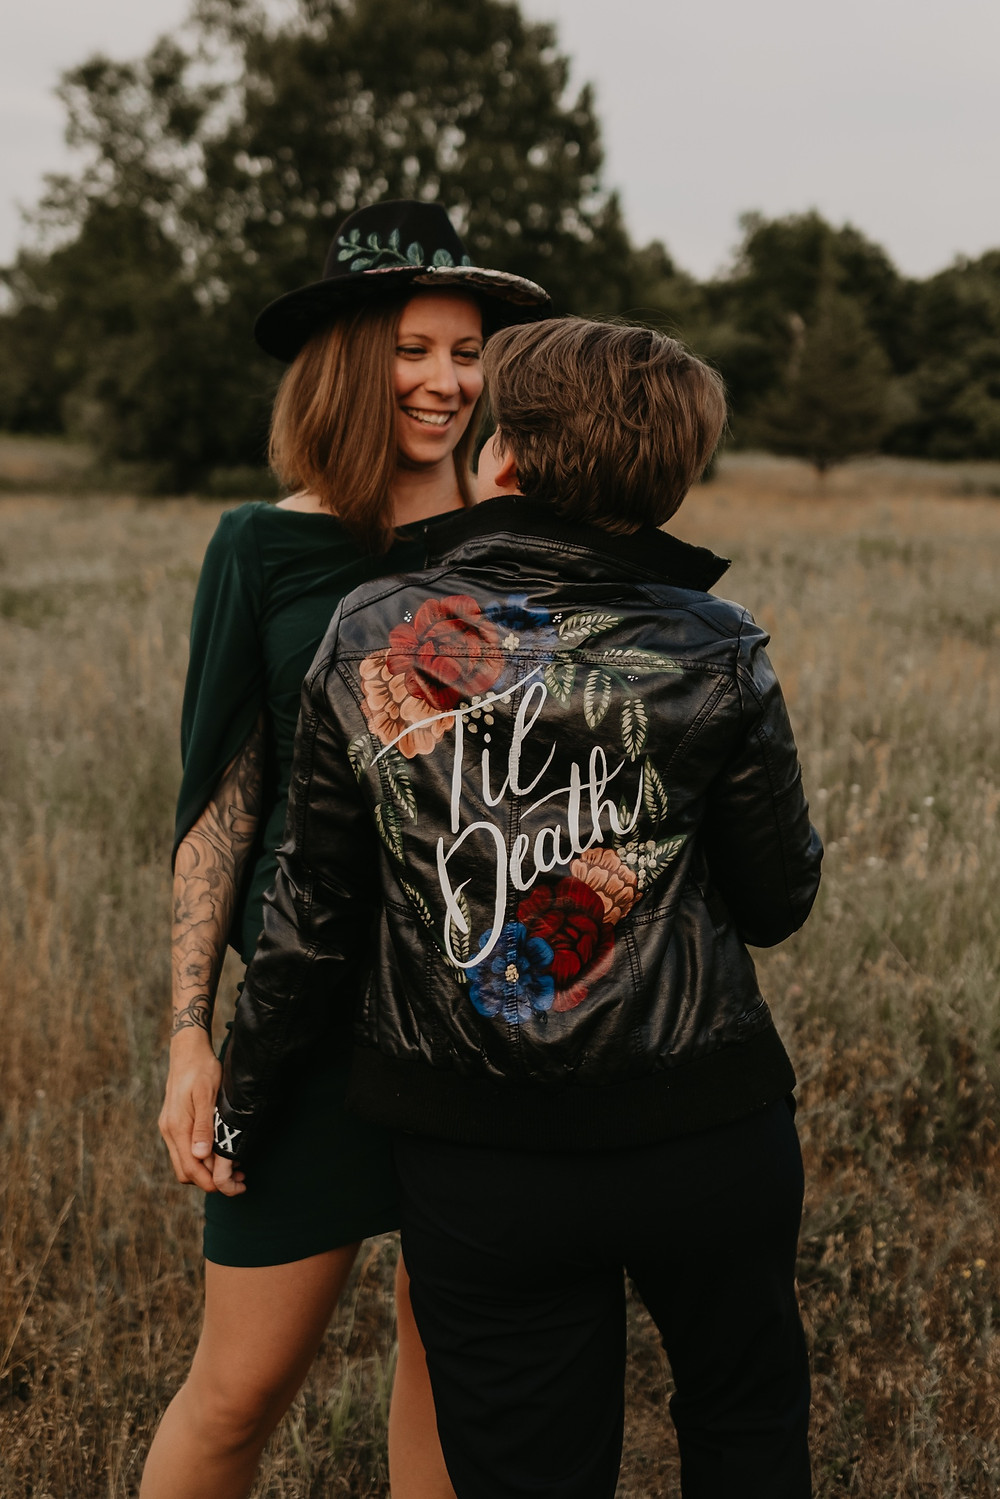 Stony Creek Metro Park couples photo session. Photographed by Nicole Leanne Photography